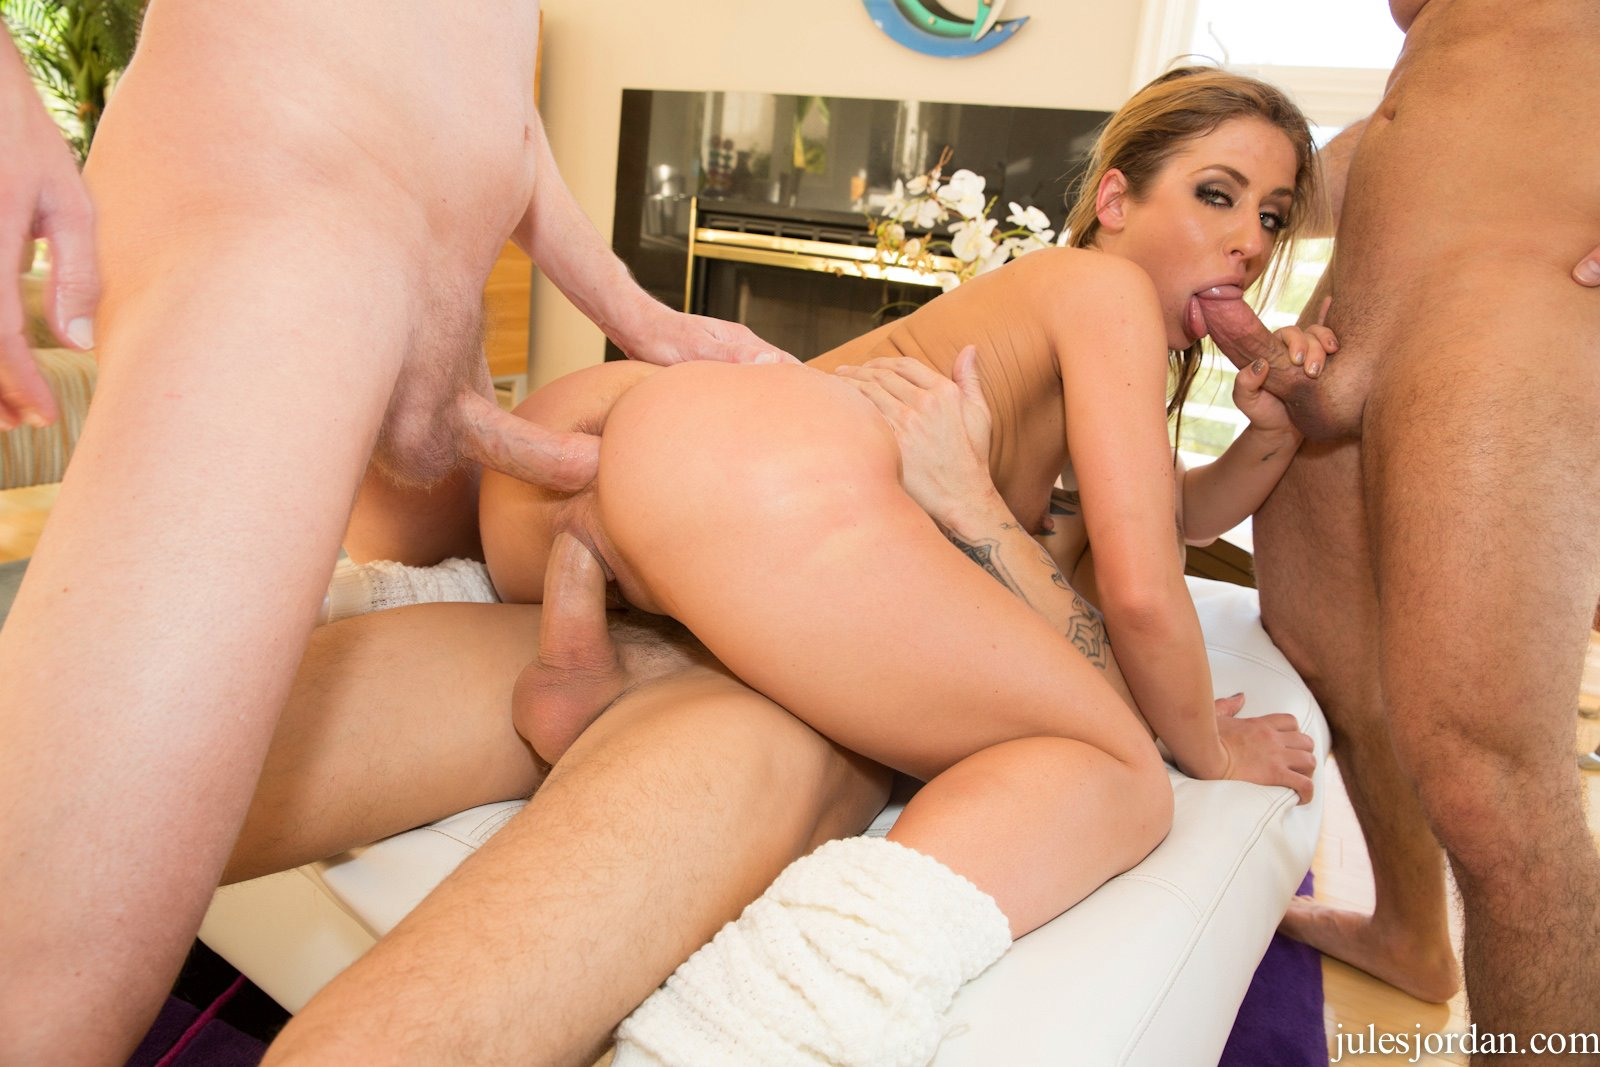 Sheena shaw in a relentless anal scene